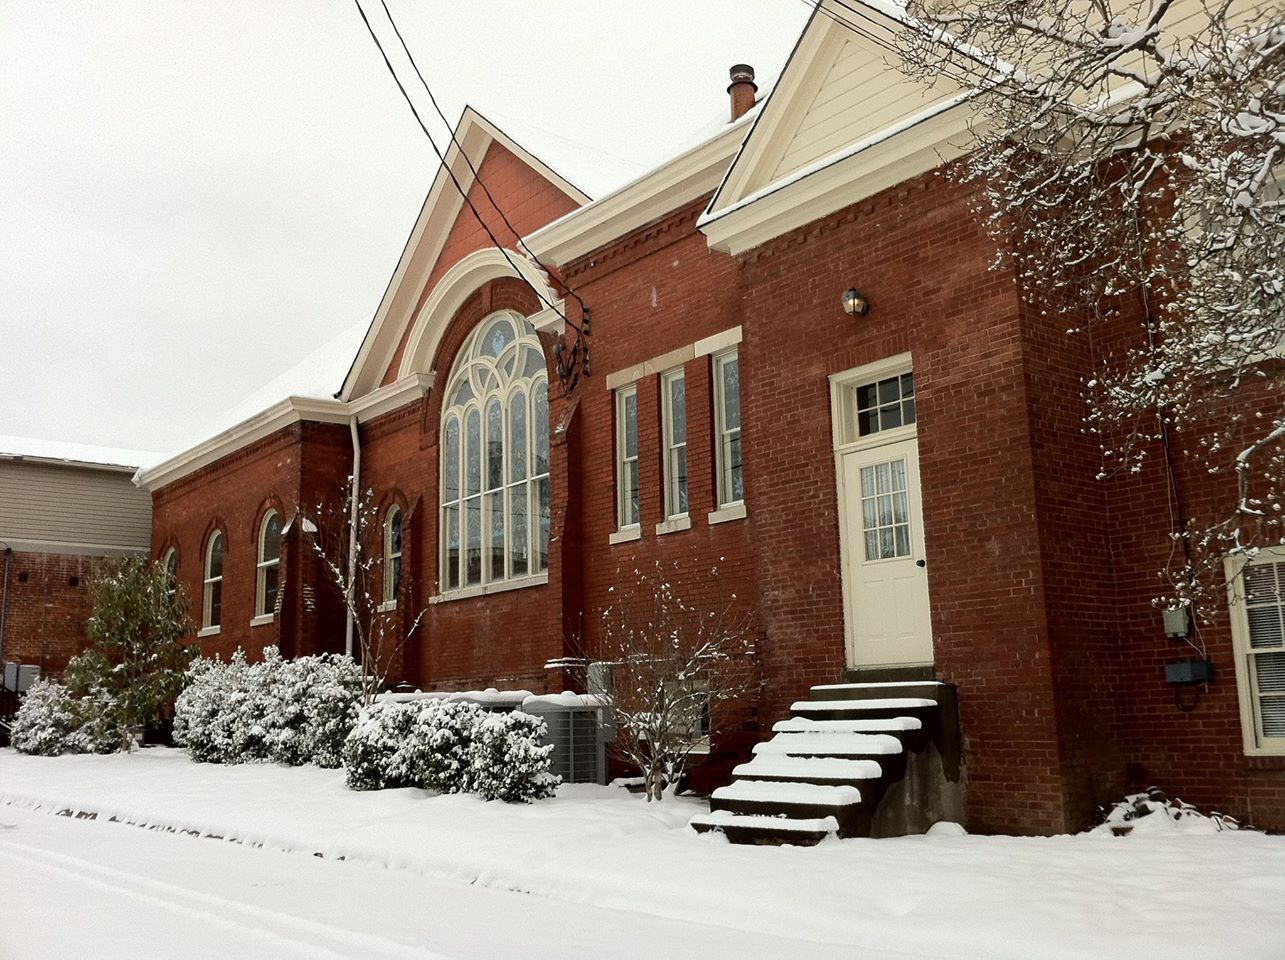 Collierville United Methodist Church on the town square ...